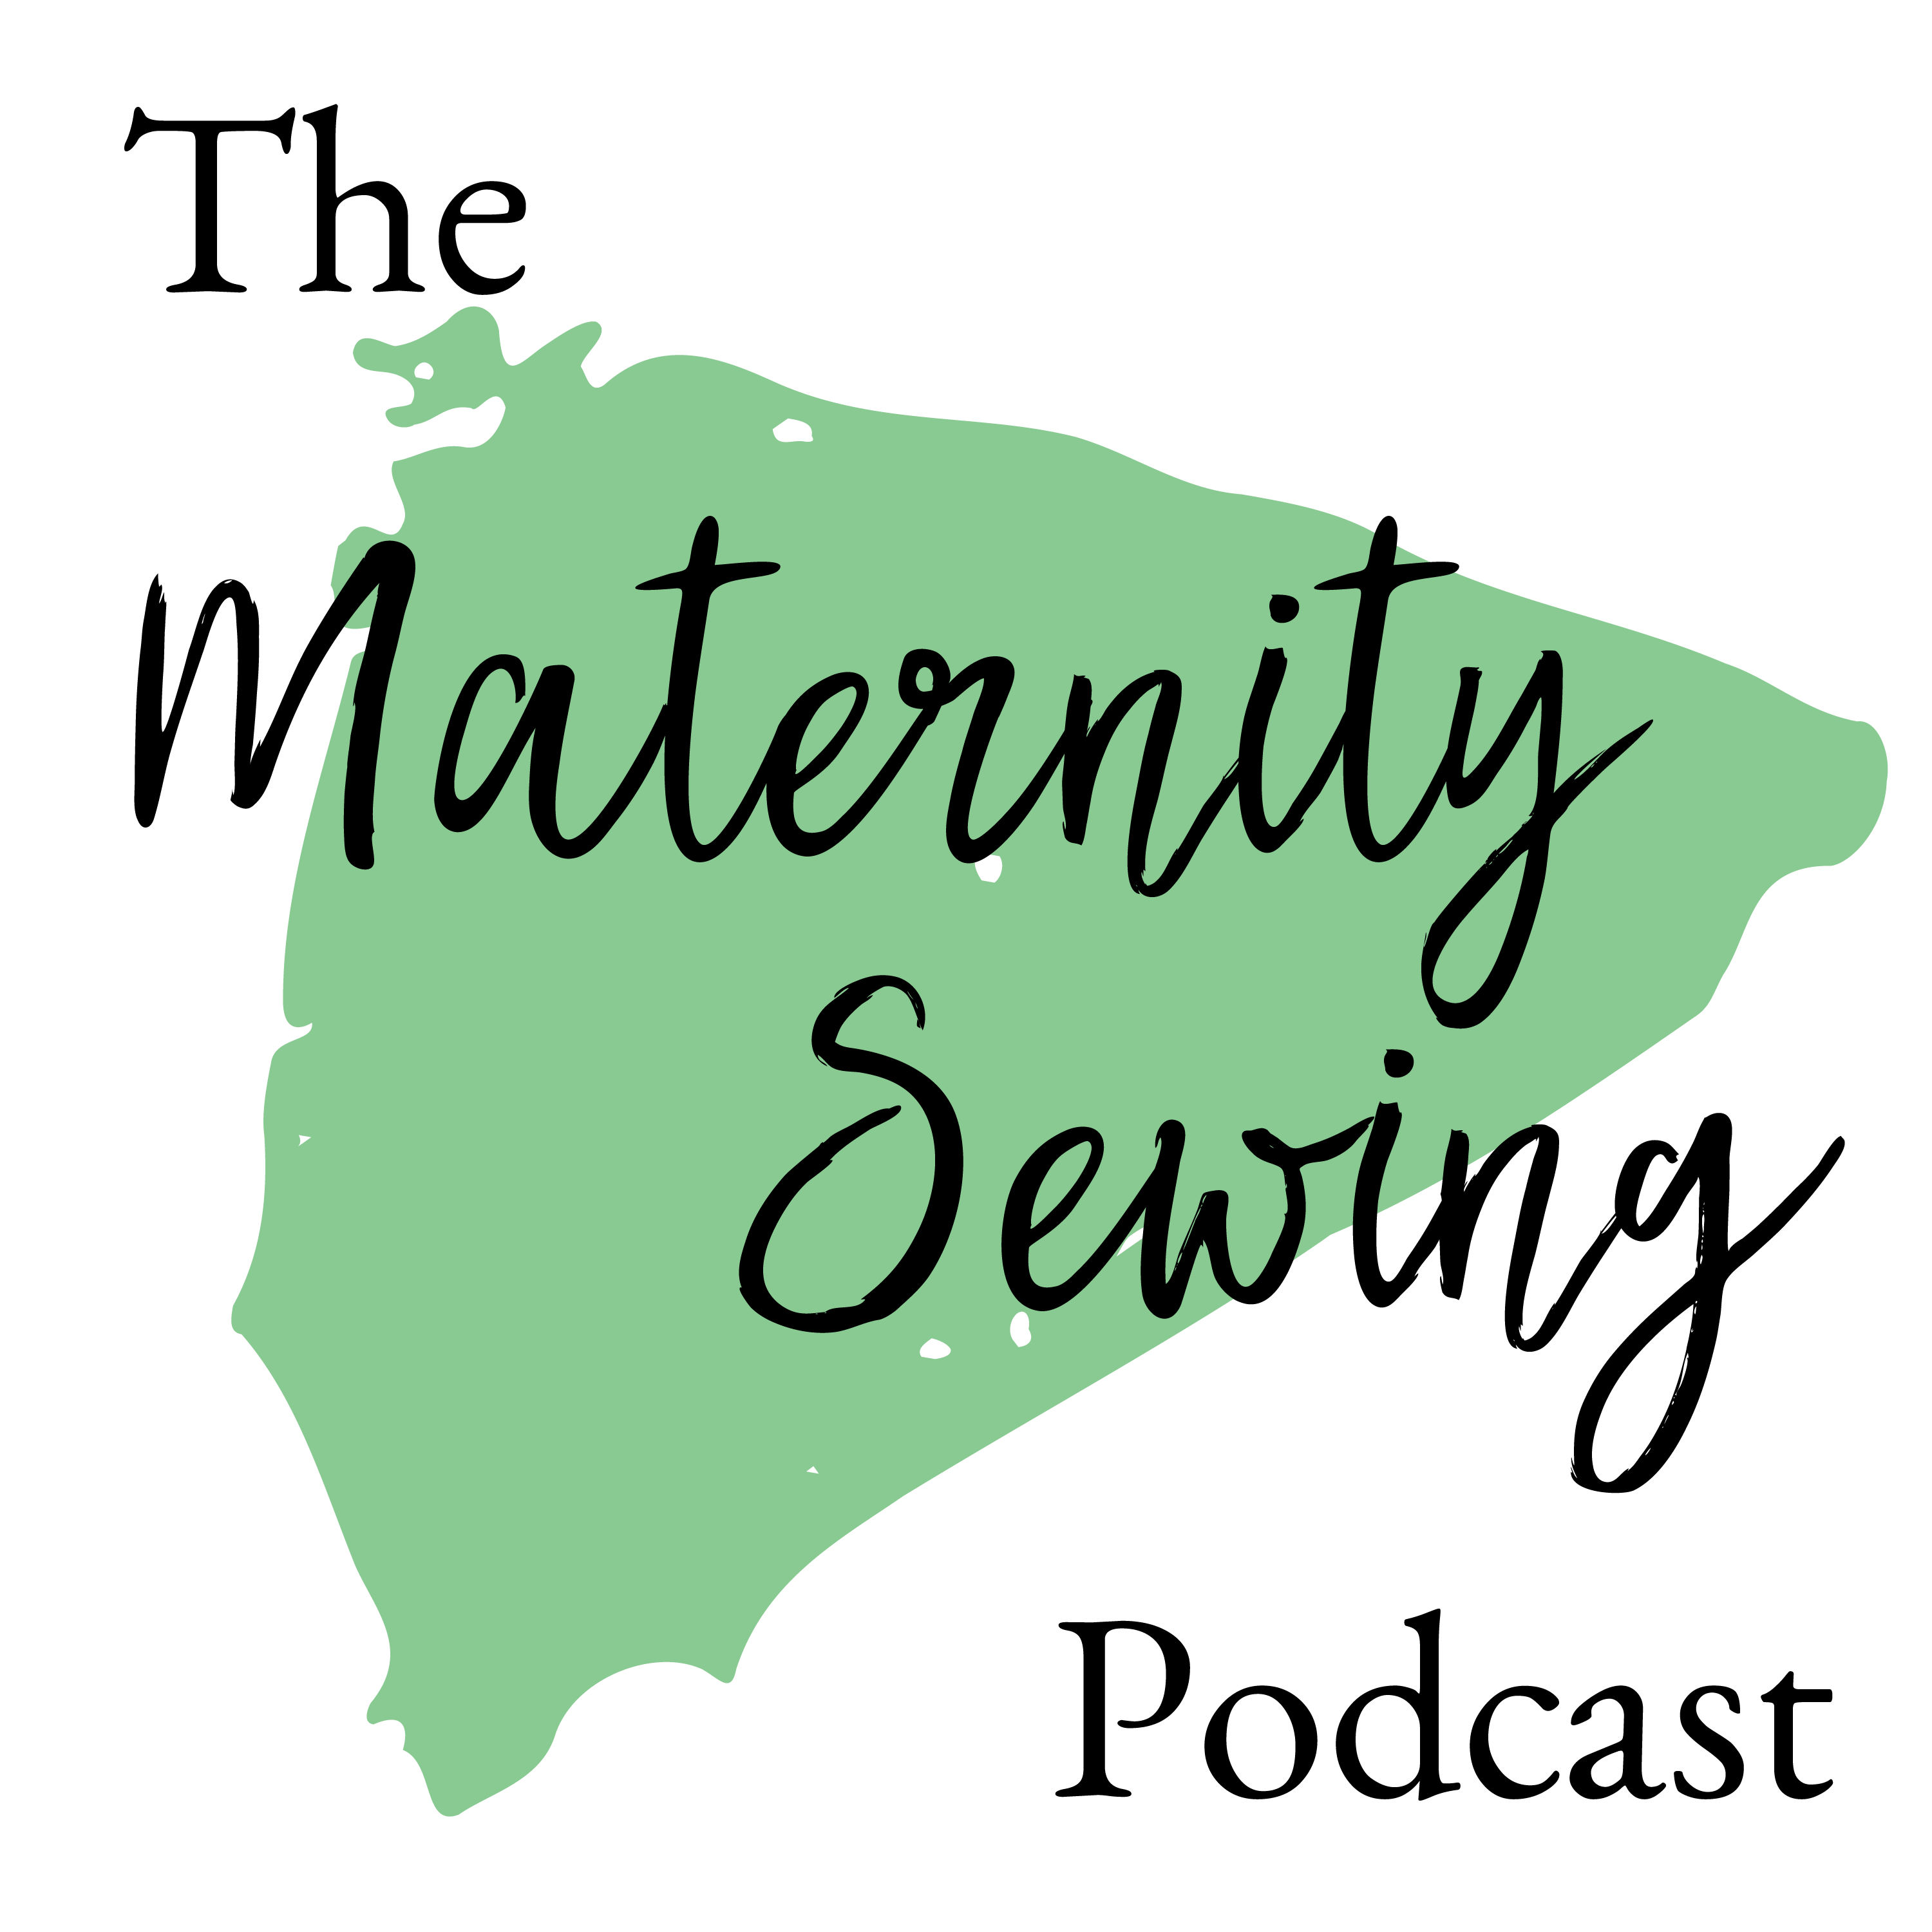 Skirt Png No Backgroun - The Maternity Sewing Podcast on Apple Podcasts